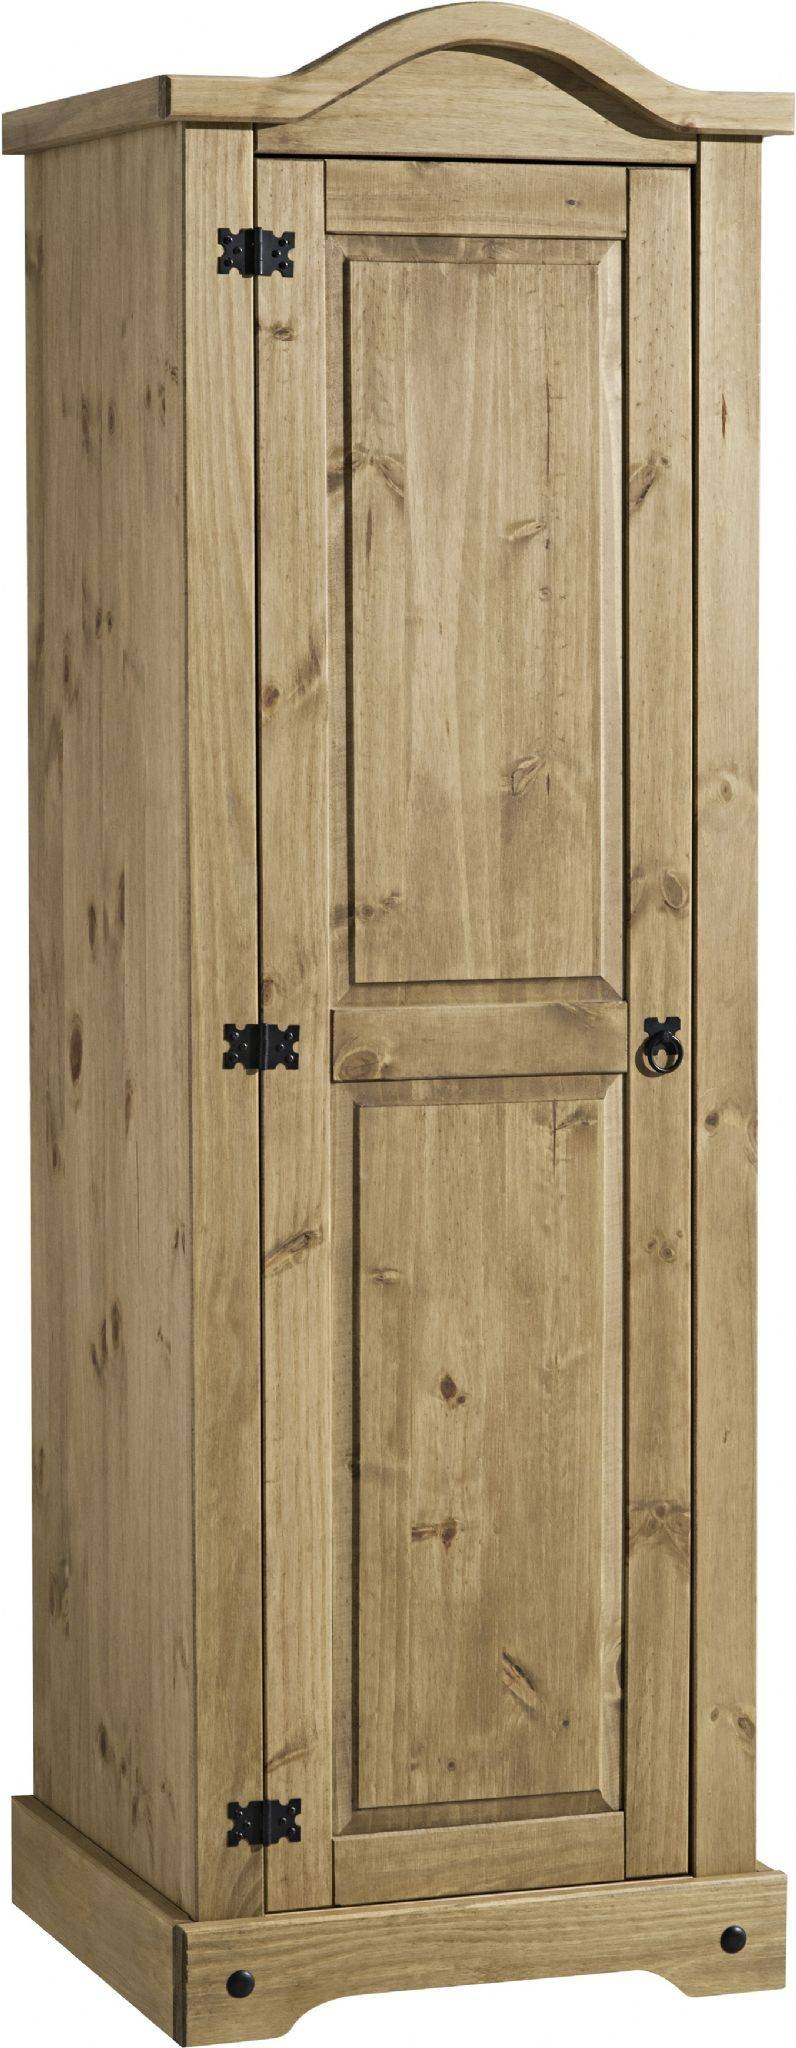 Corona Single One Mirrored Door 1 Drawer Armoire Wardrobe with Single Pine Wardrobes With Drawers (Image 7 of 15)